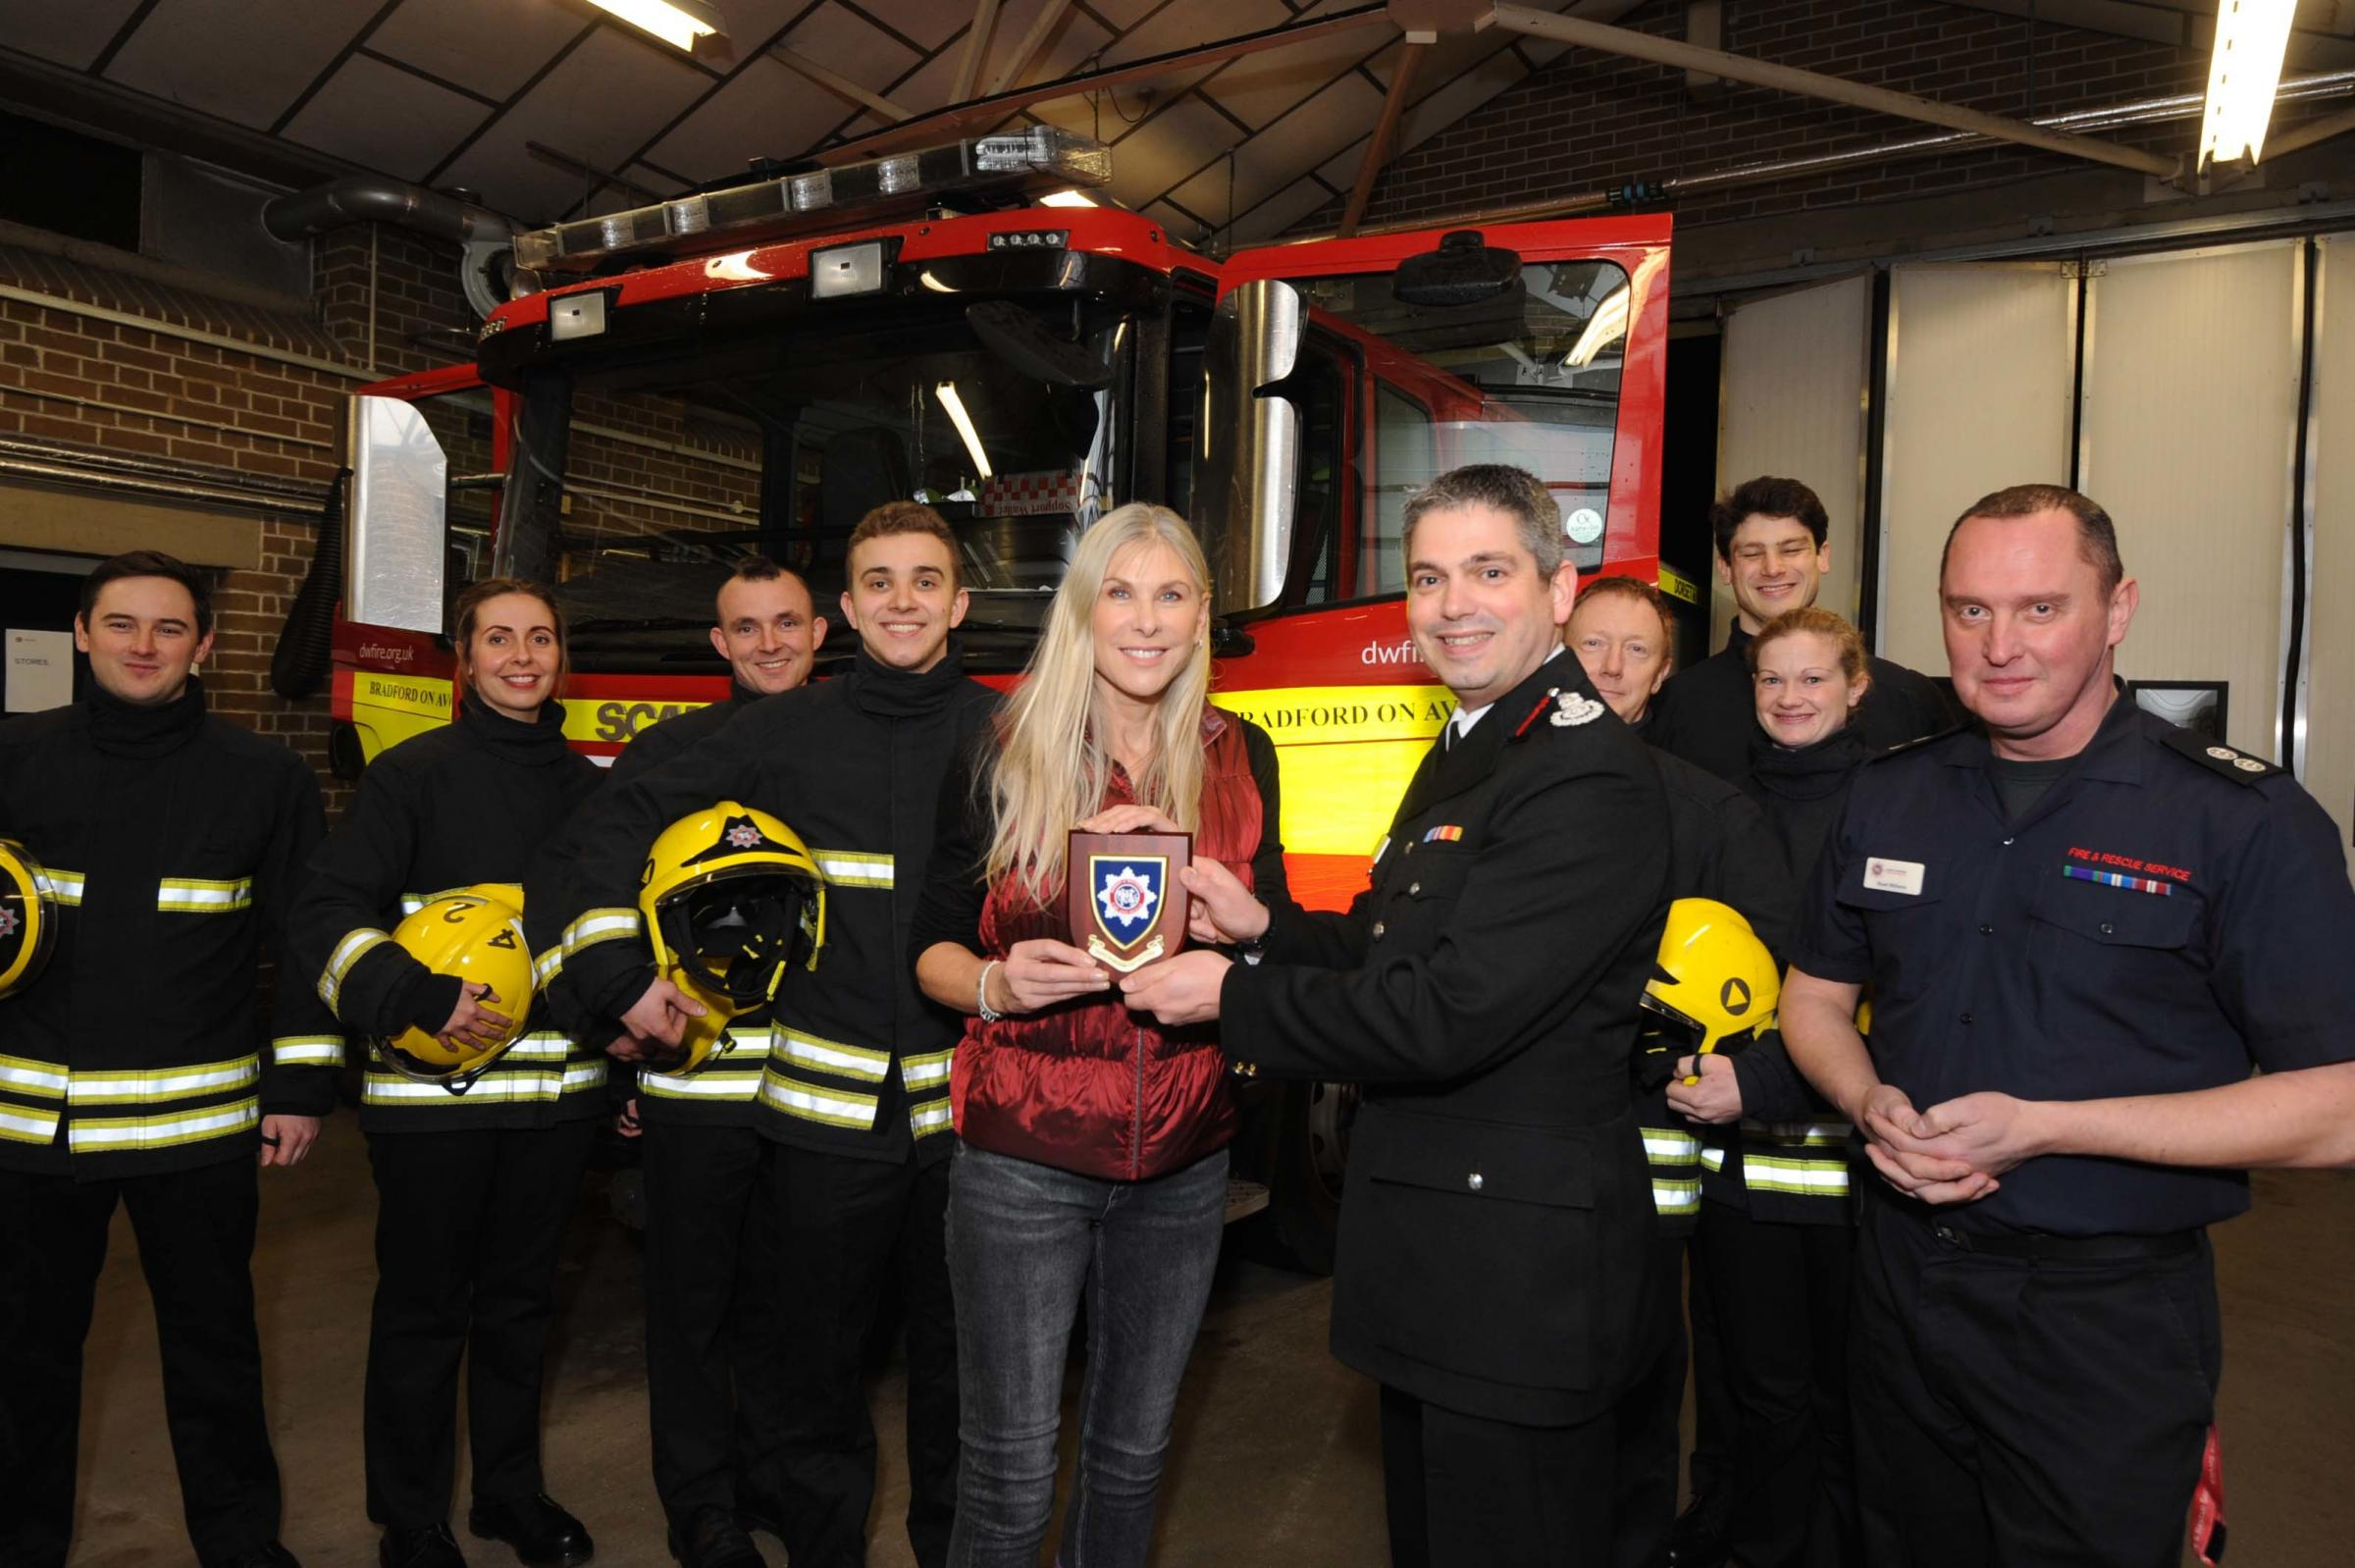 Former Olympic swimmer Sharron Davies thanks the Bradford on Avon firefighters to help with recruitment after a car blaze endangered her home. Dorset and Wiltshire Fire Chief Ben Ansell and the crew presented her with a memento of her visit Photo: Trevor